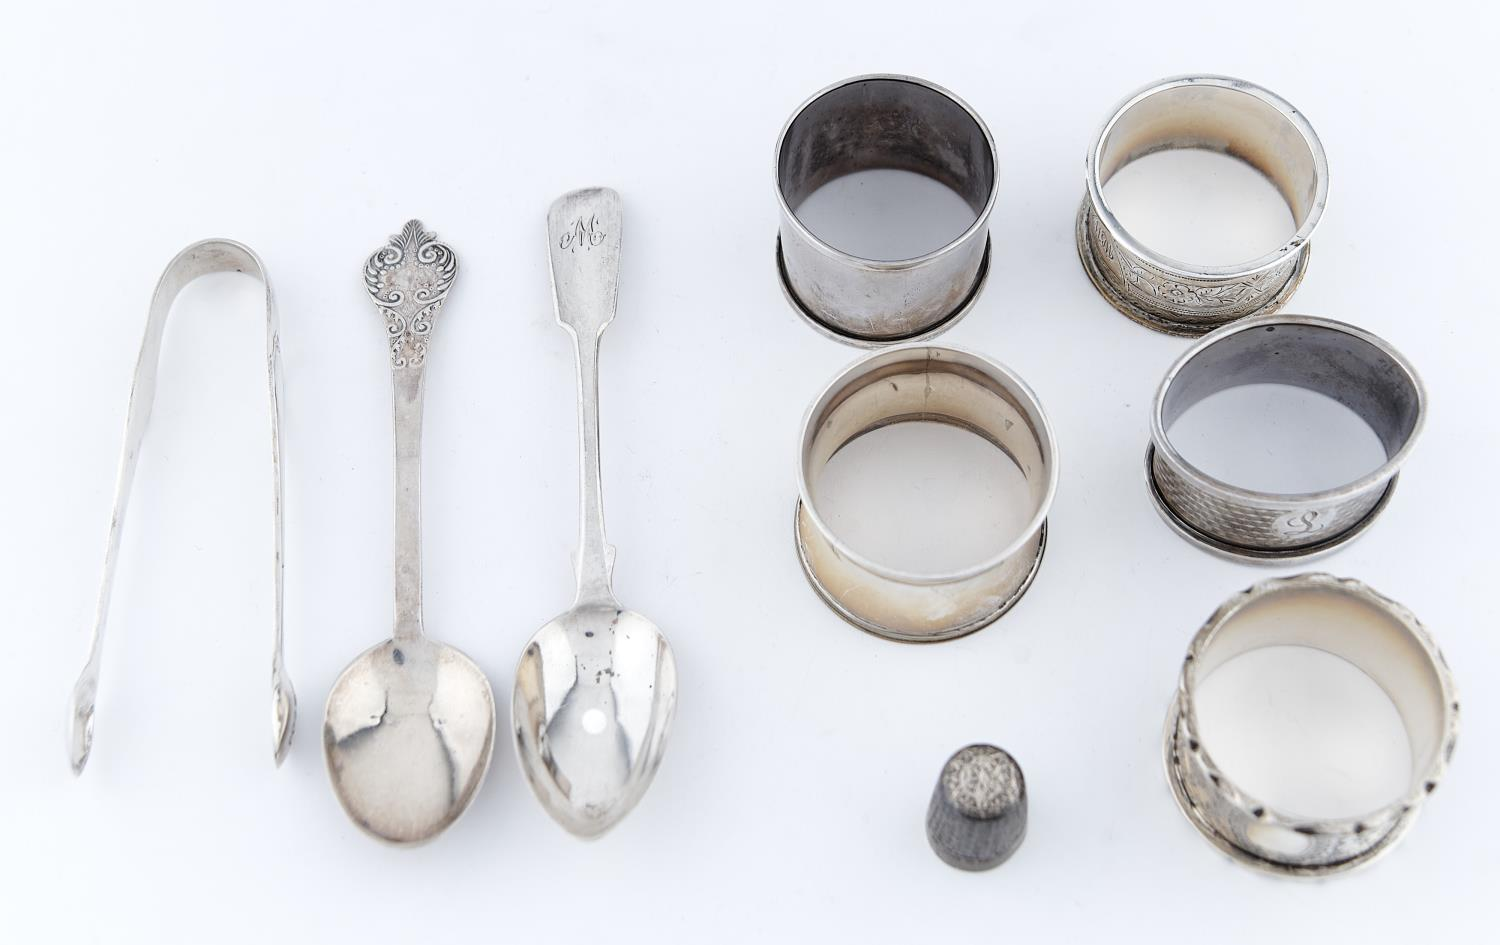 FIVE EDWARDIAN AND LATER SILVER NAPKIN RINGS, A BRITANNIA STANDARD REPLICA LACE BACK SPOON, A